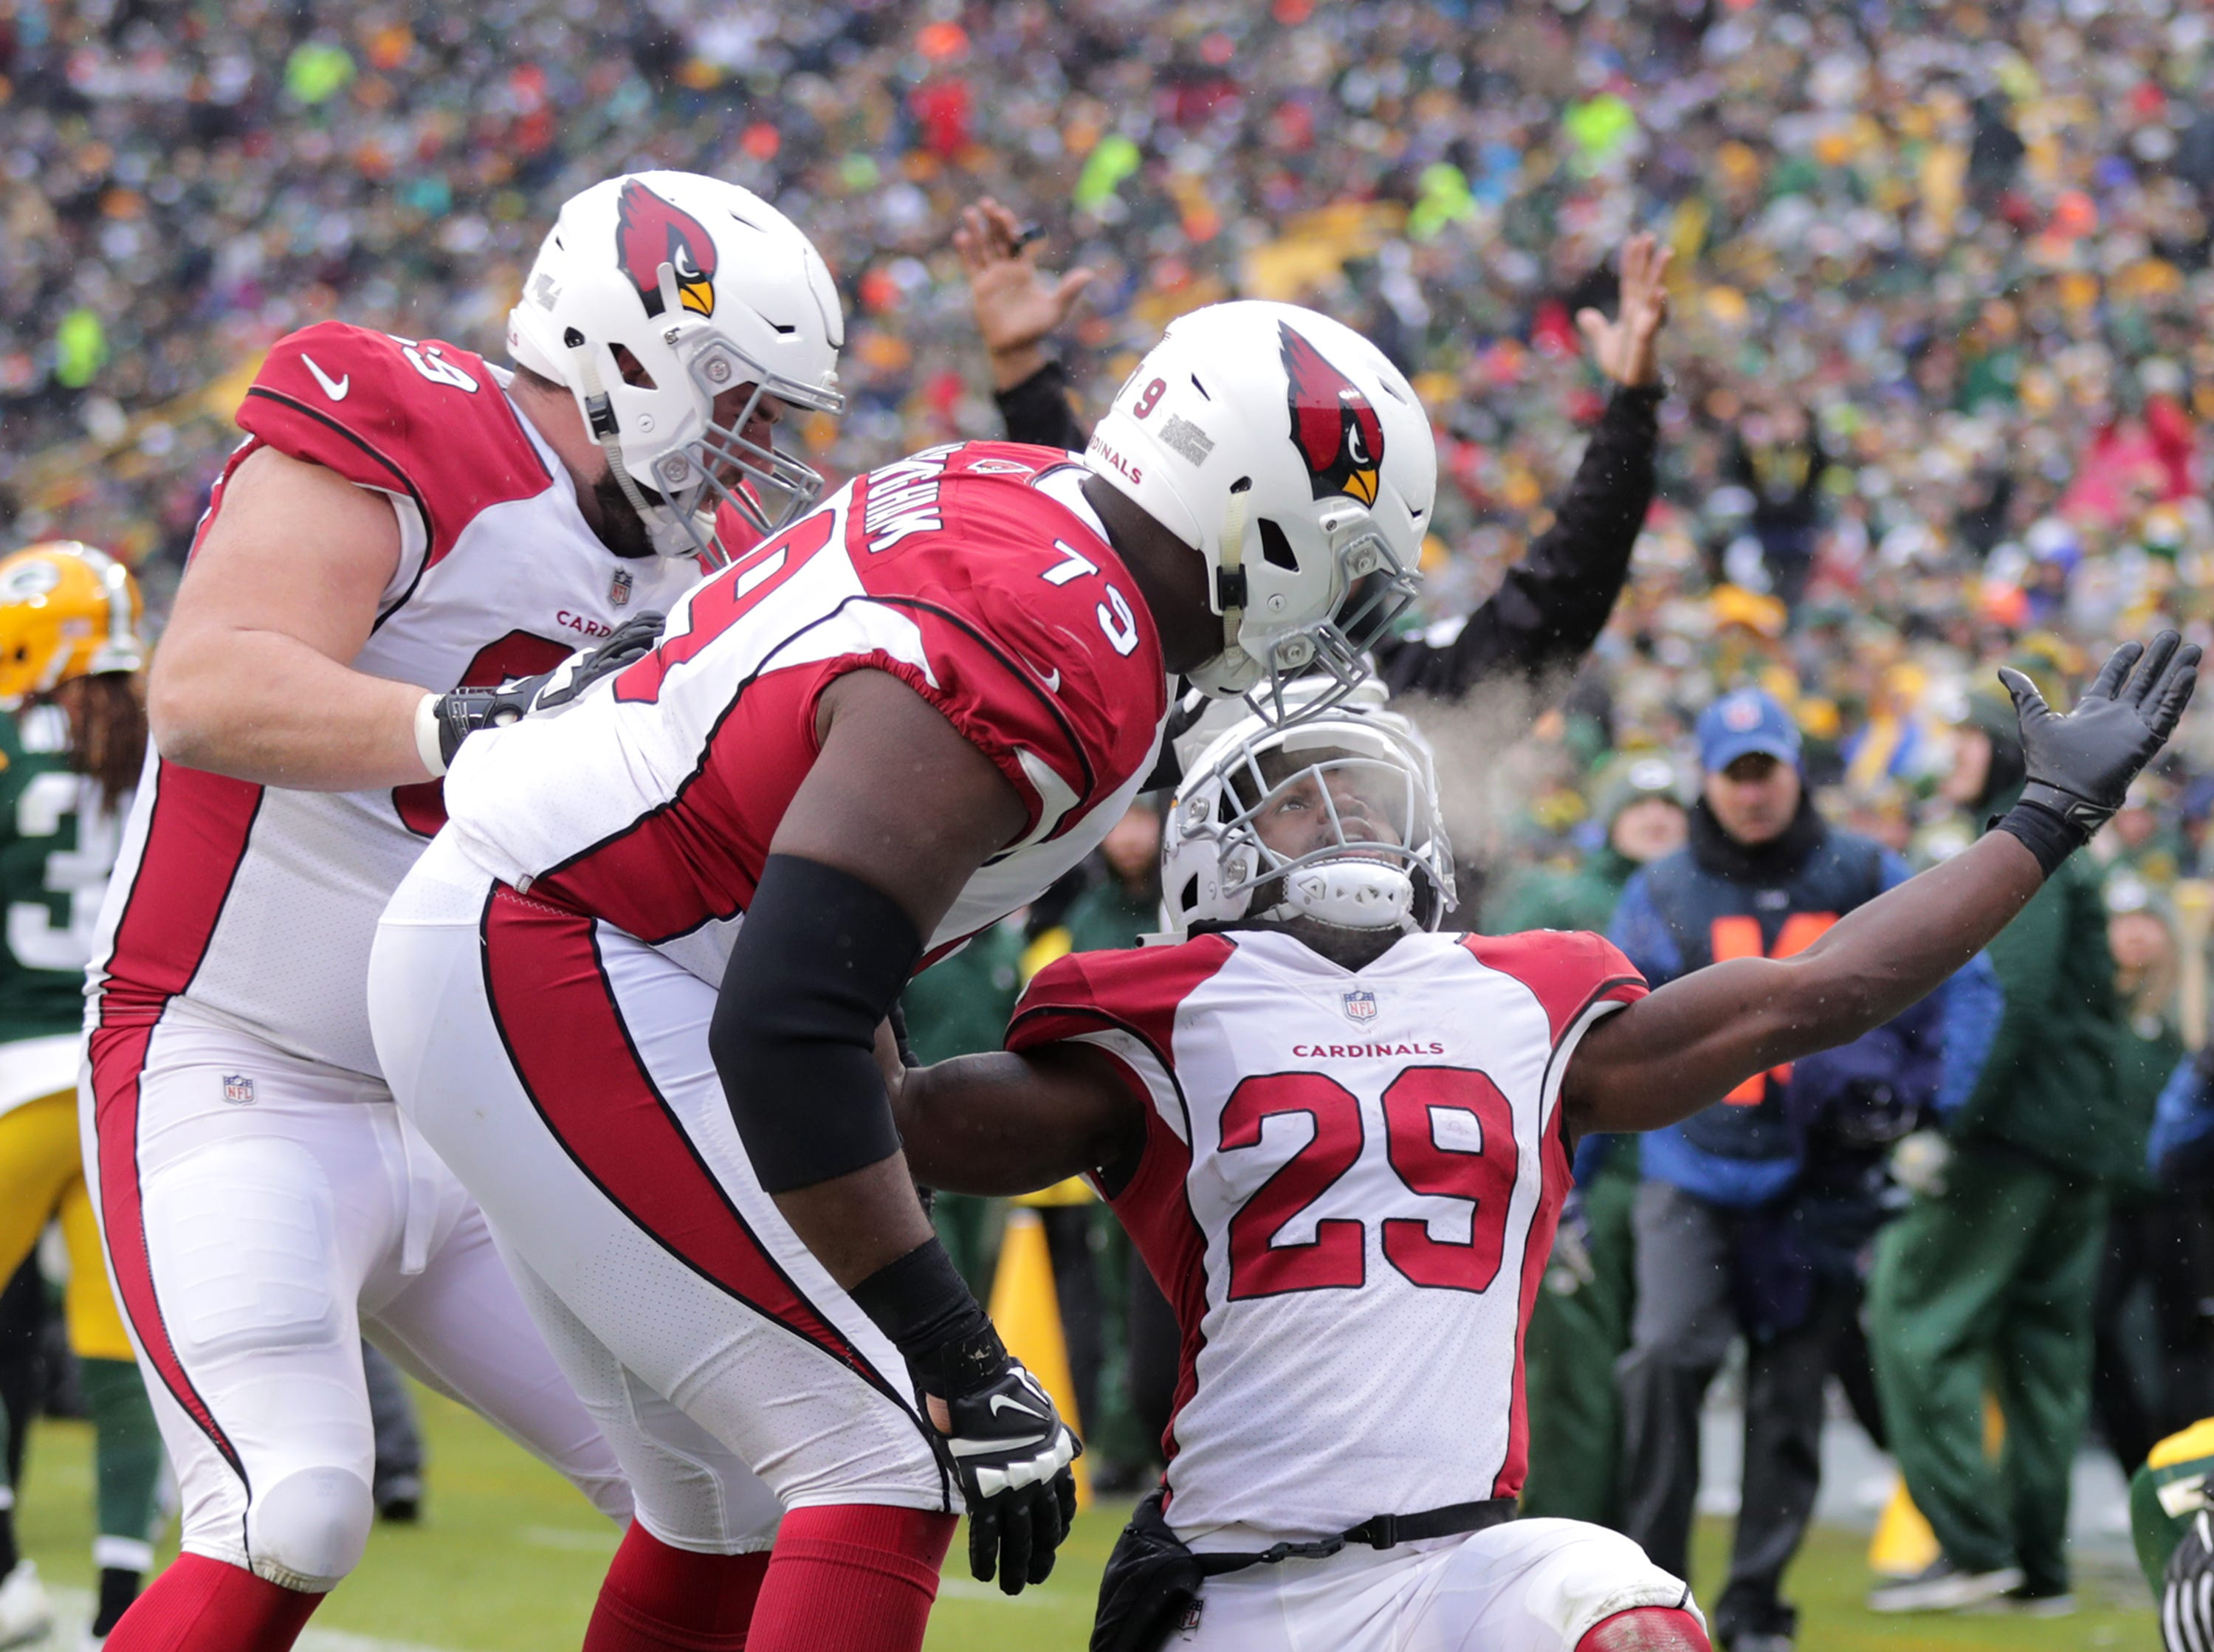 Arizona Cardinals running back Chase Edmonds celebrates a third quarter touchdown against Green Bay Packers inside linebacker Blake Martinez and cornerback Josh Jackson during their football game on Sunday, December 2, 2018, at Lambeau Field in Green Bay, Wis.